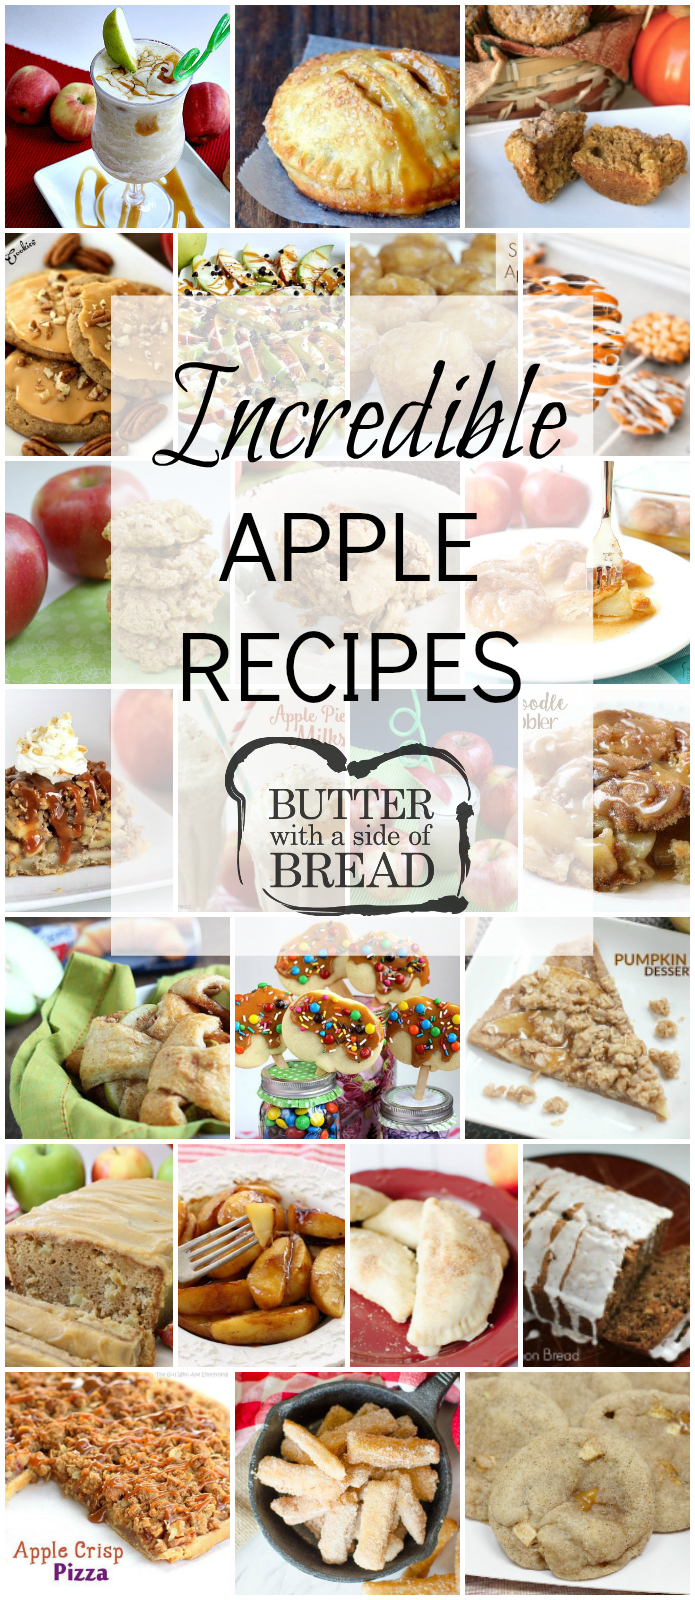 Most Popular Apple Recipes featuring apple desserts, apple snacks, cookies, breads and more. Easy apple recipes for fall baking or any time of the year.